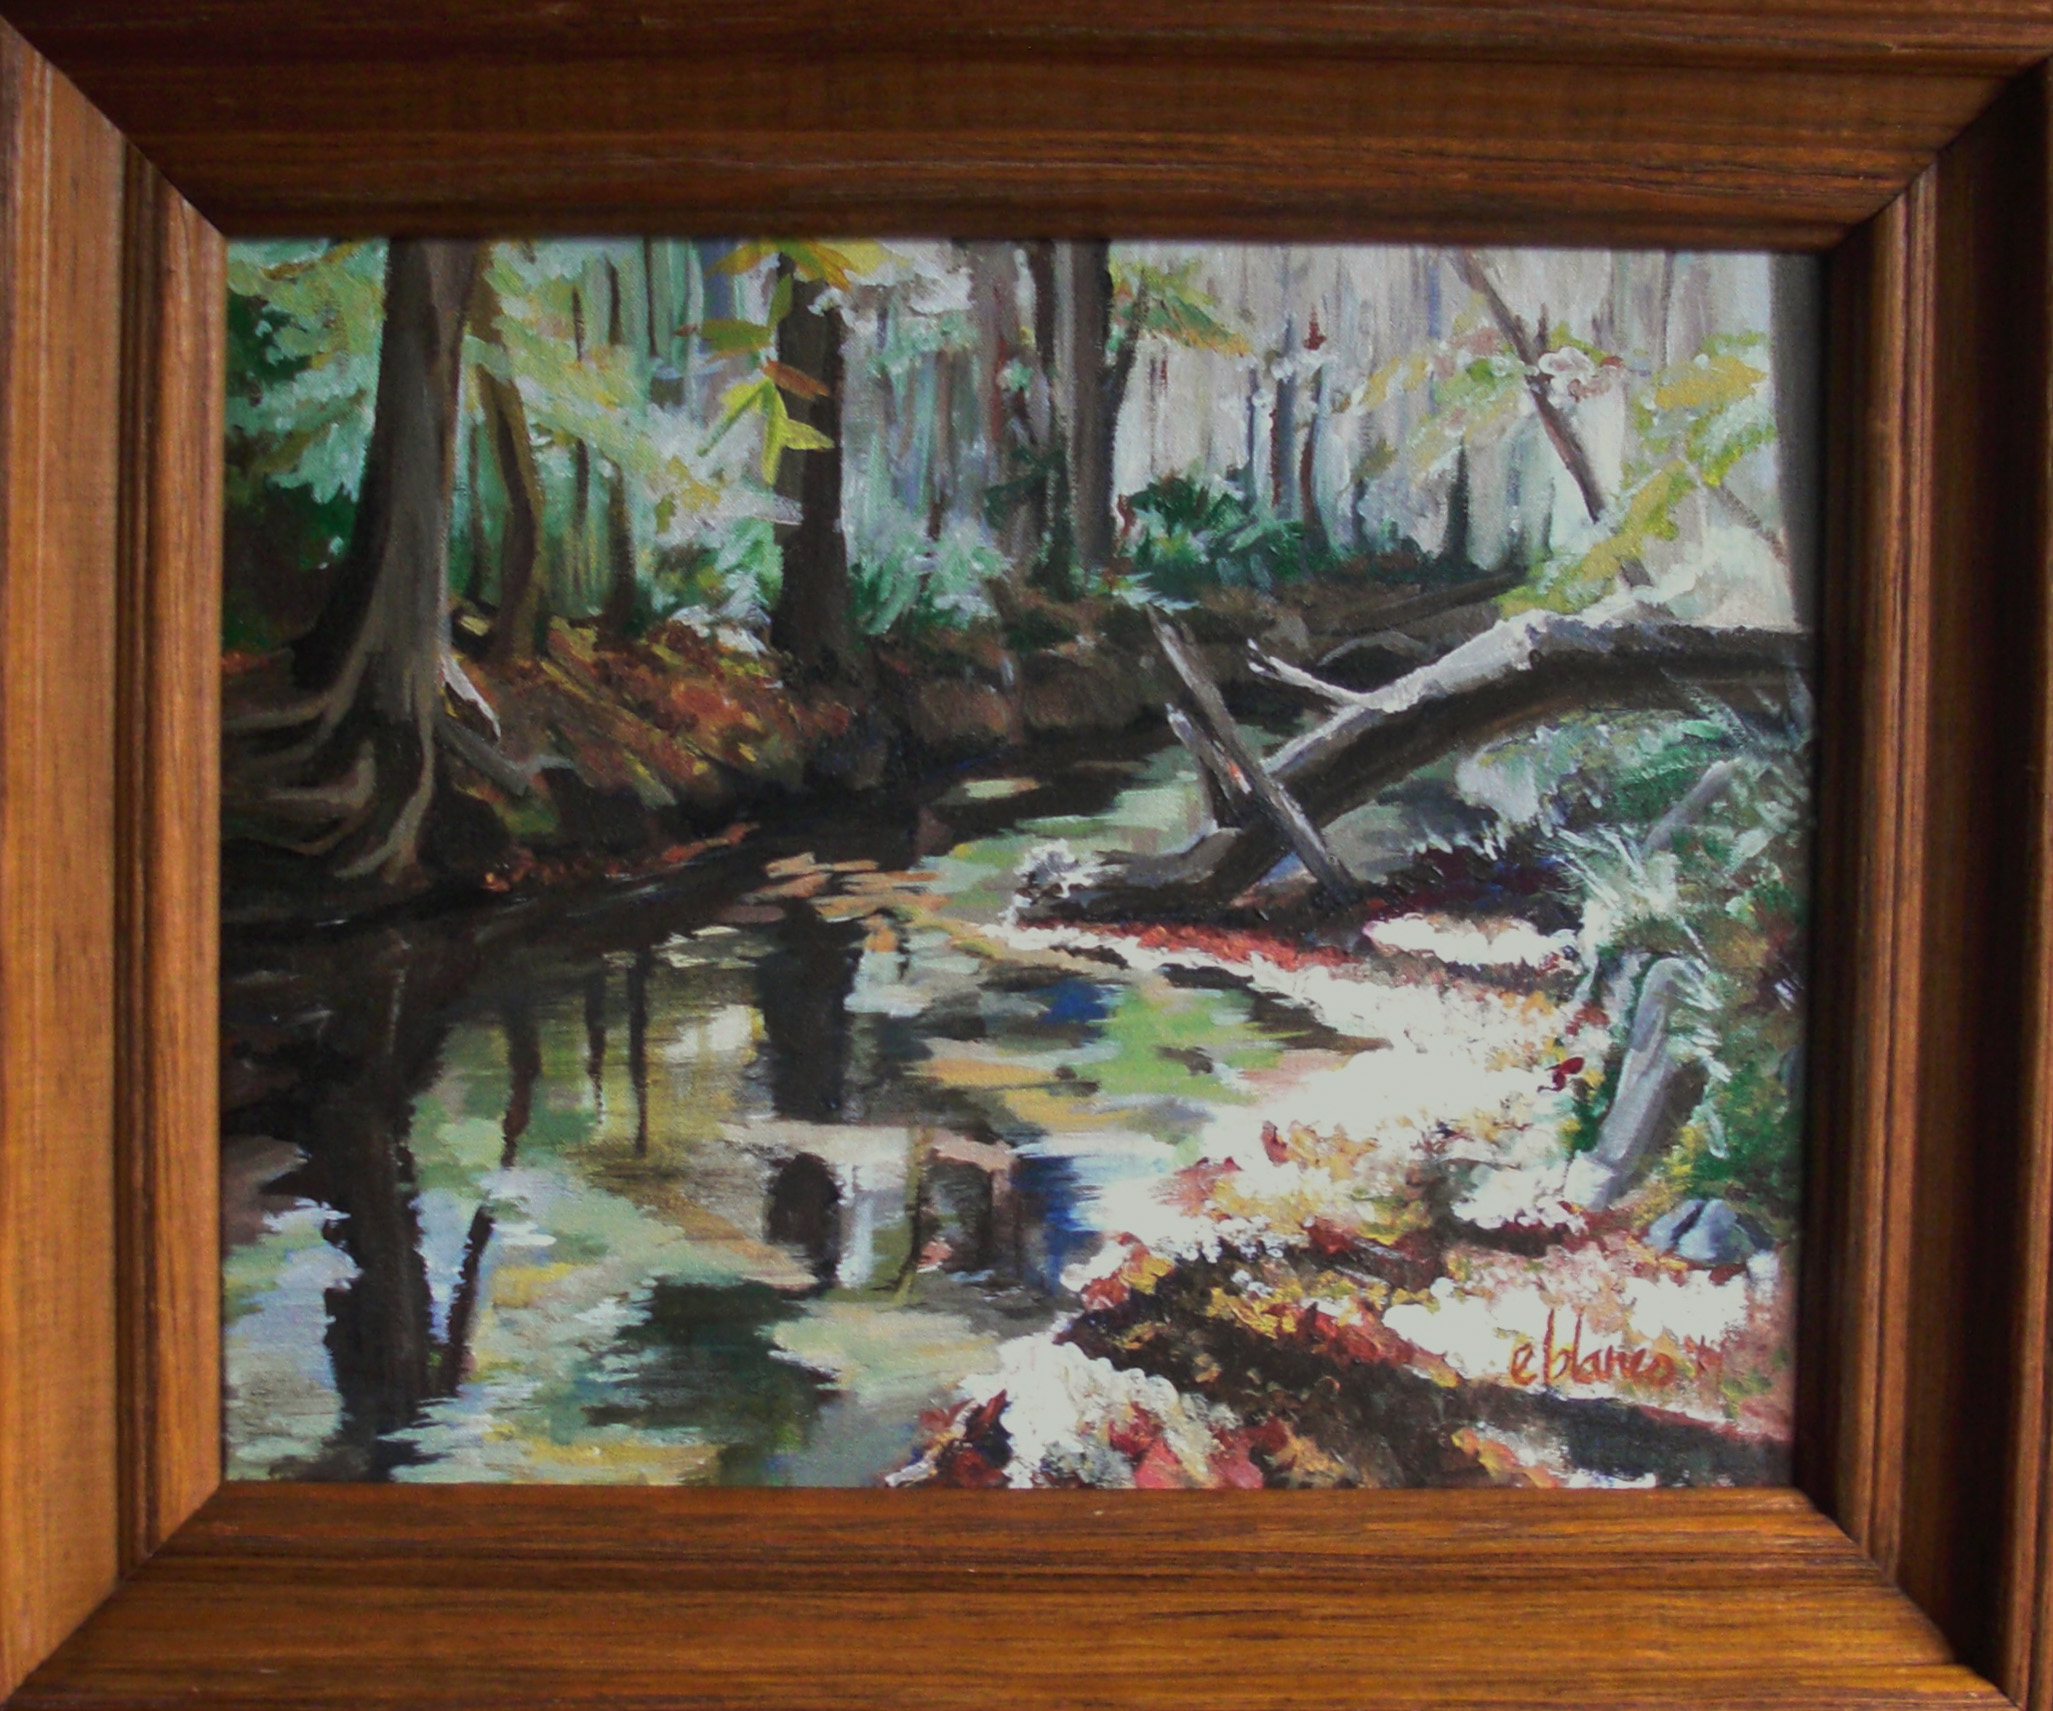 Creekside original painting by Emma Blanco